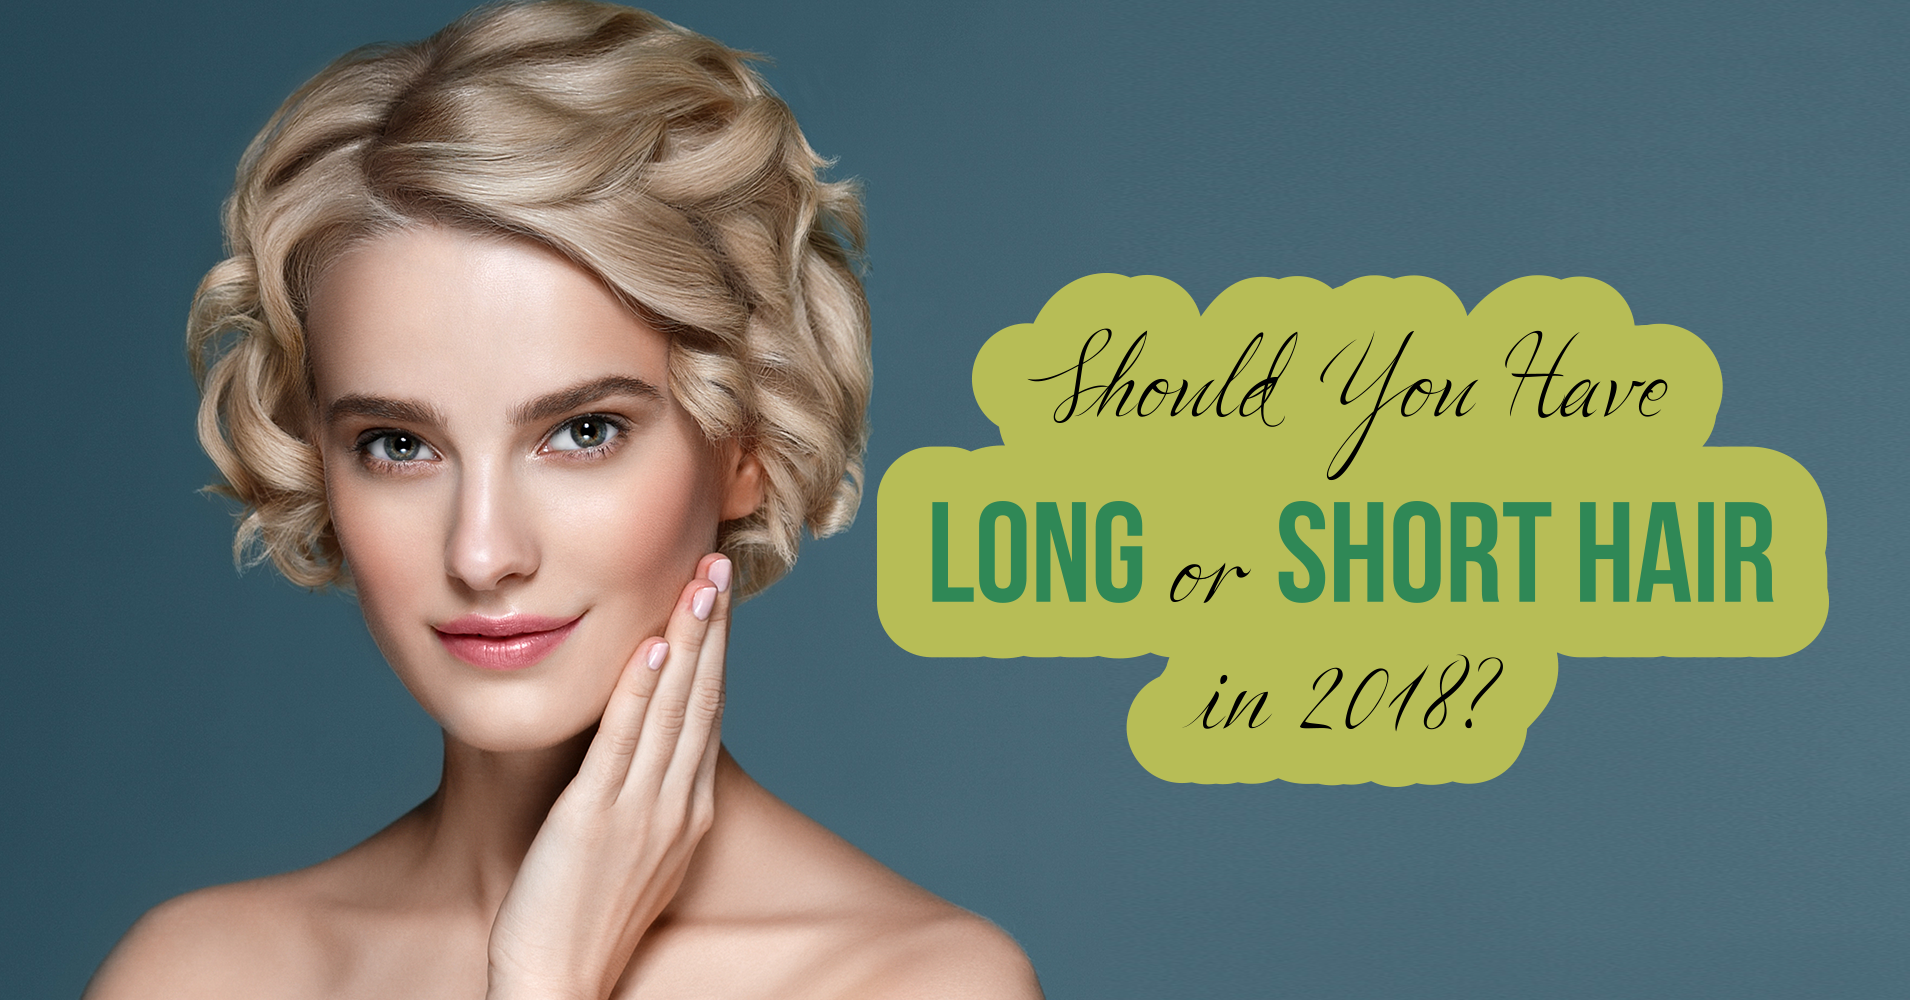 should you have long or short hair in 2018? - quiz - quizony